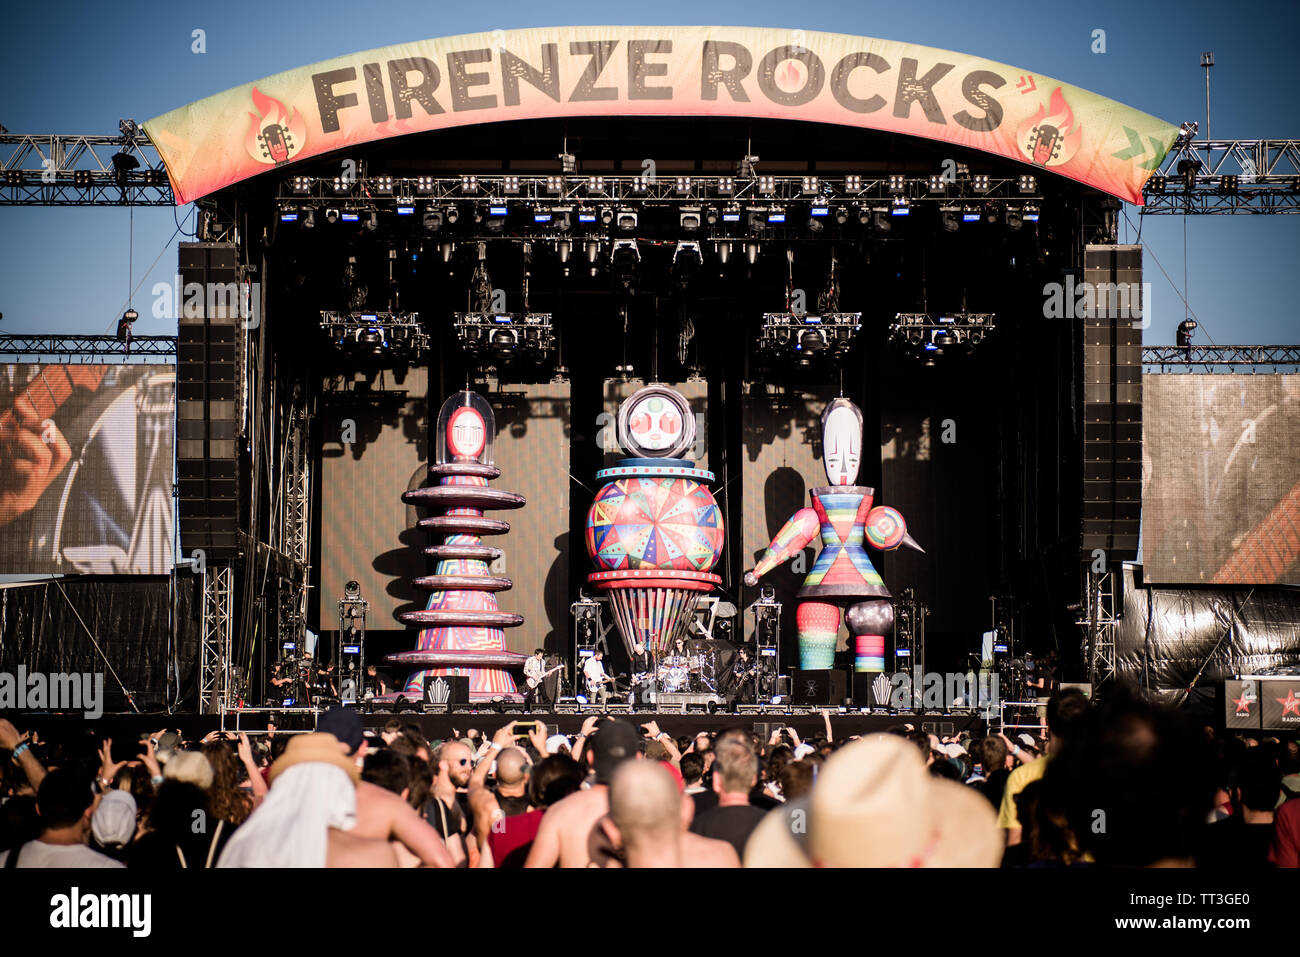 The American rock band Smashing Pumpkins, performing live on stage at the Firenze Rocks festival 2019 in Florence, Italy, opening for Tool - Stock Image